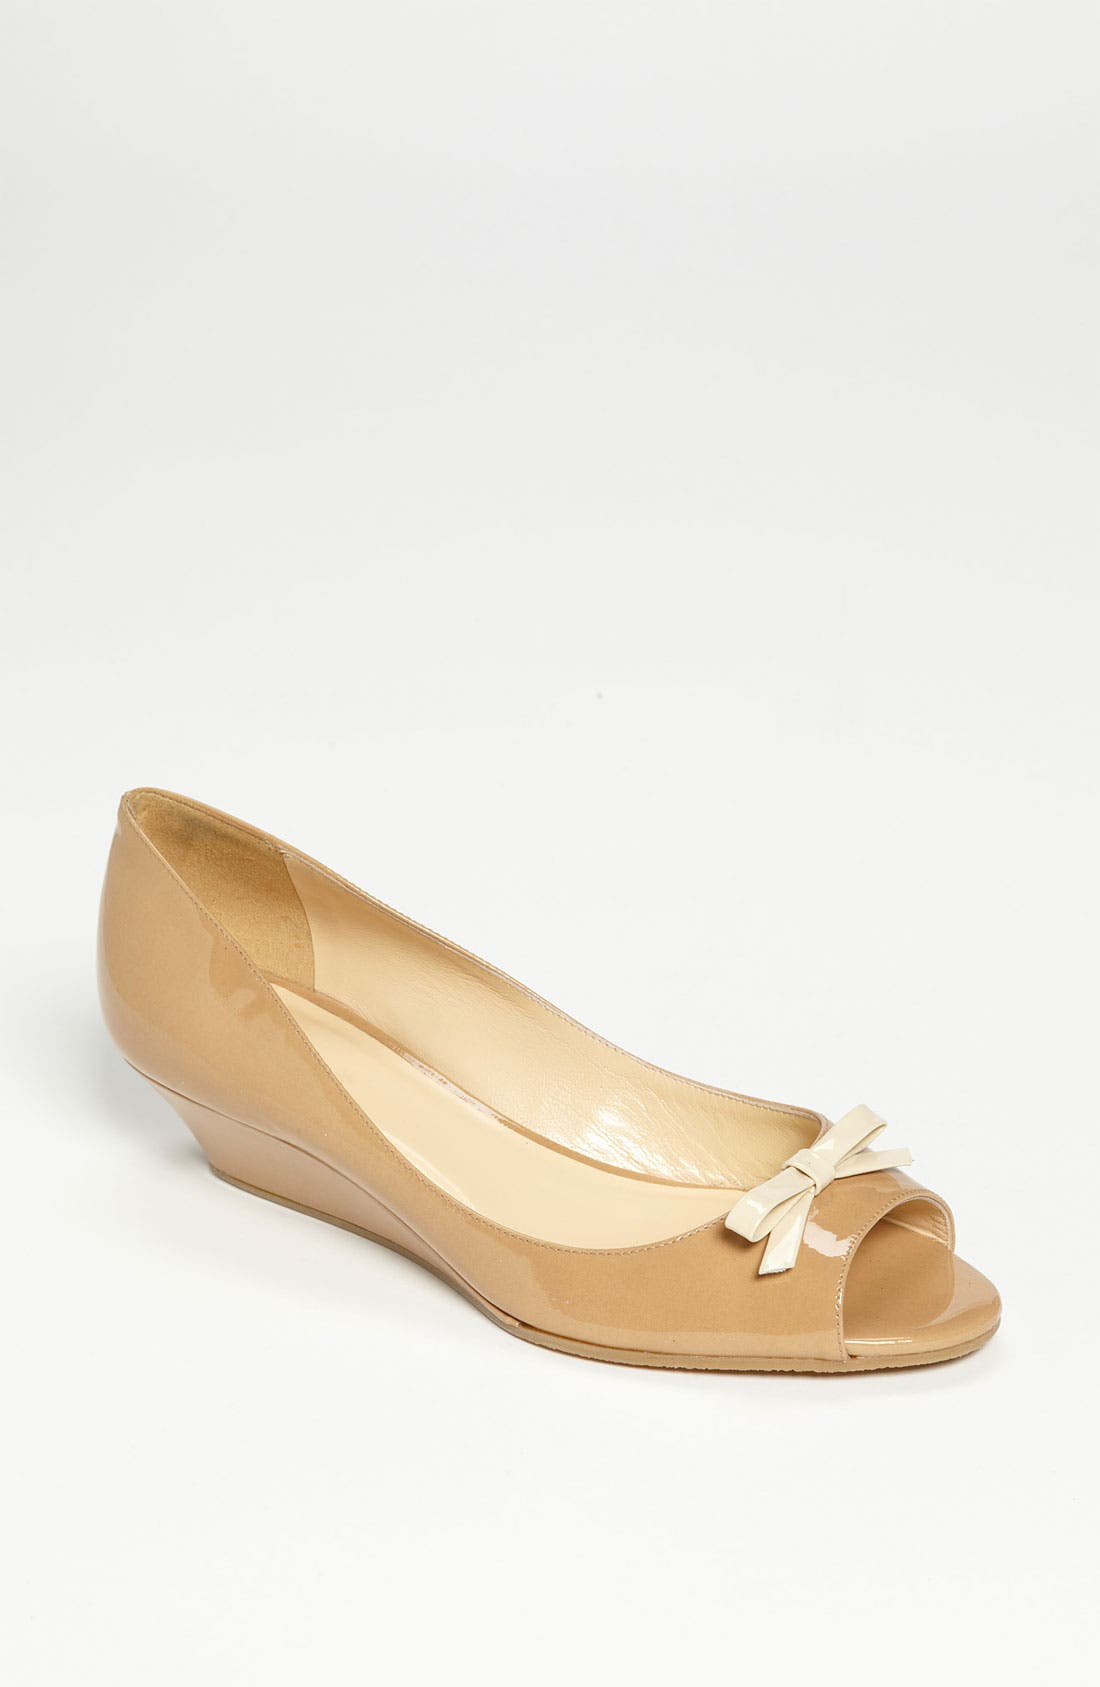 Alternate Image 1 Selected - kate spade new york 'tracey' pump